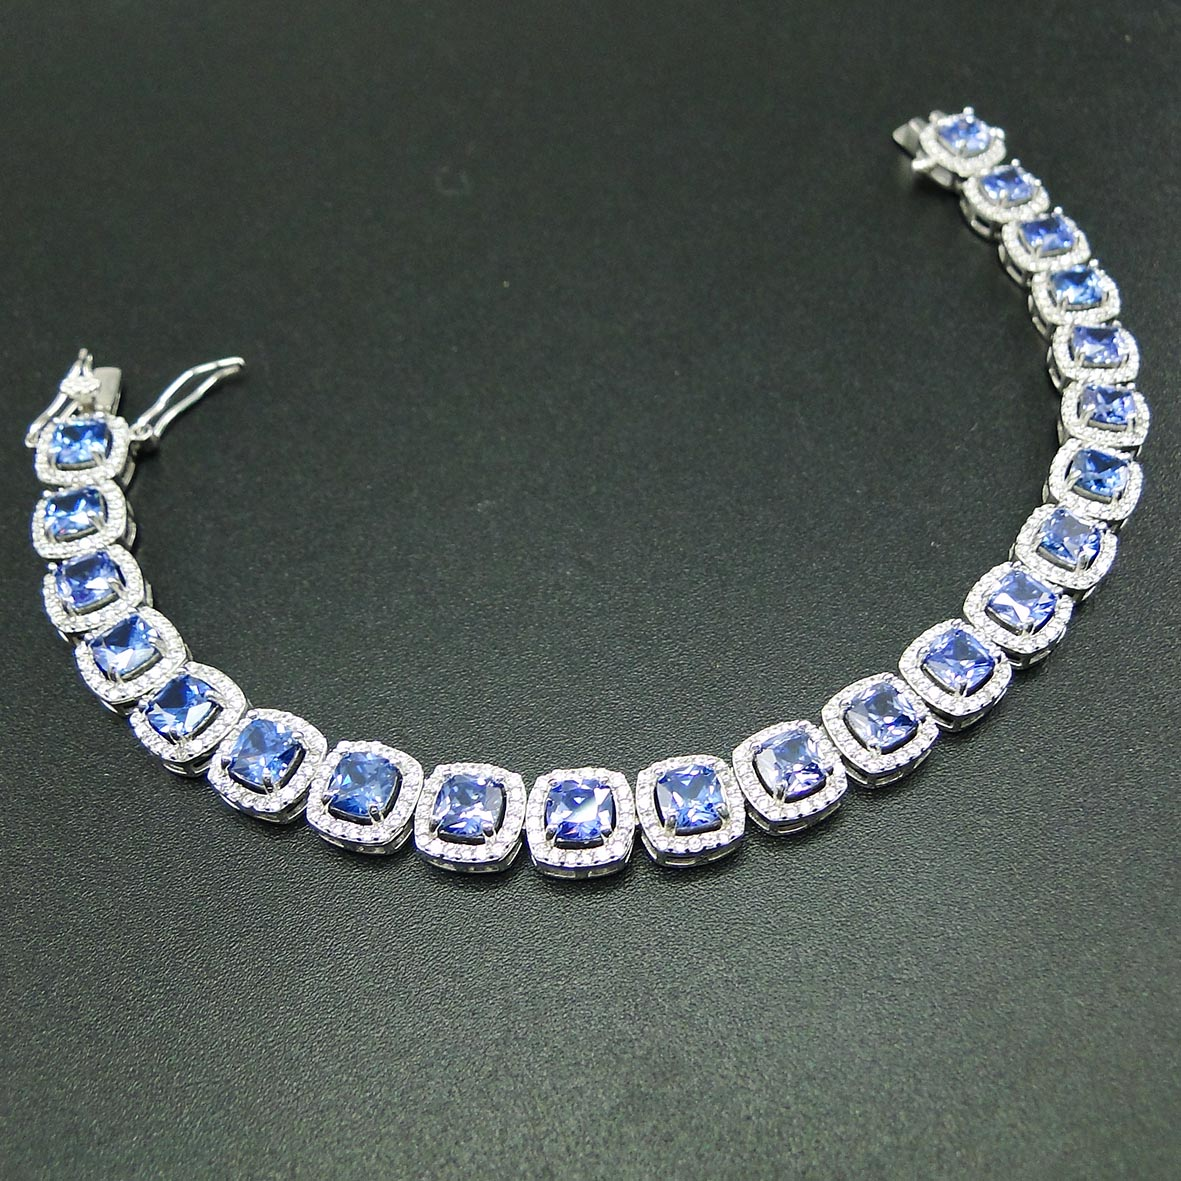 High Quality 100% Real 925 Sterling Silver Bracelet Tanzanite CZ Bracelets for Women Engagement Wedding Jewelry Gift